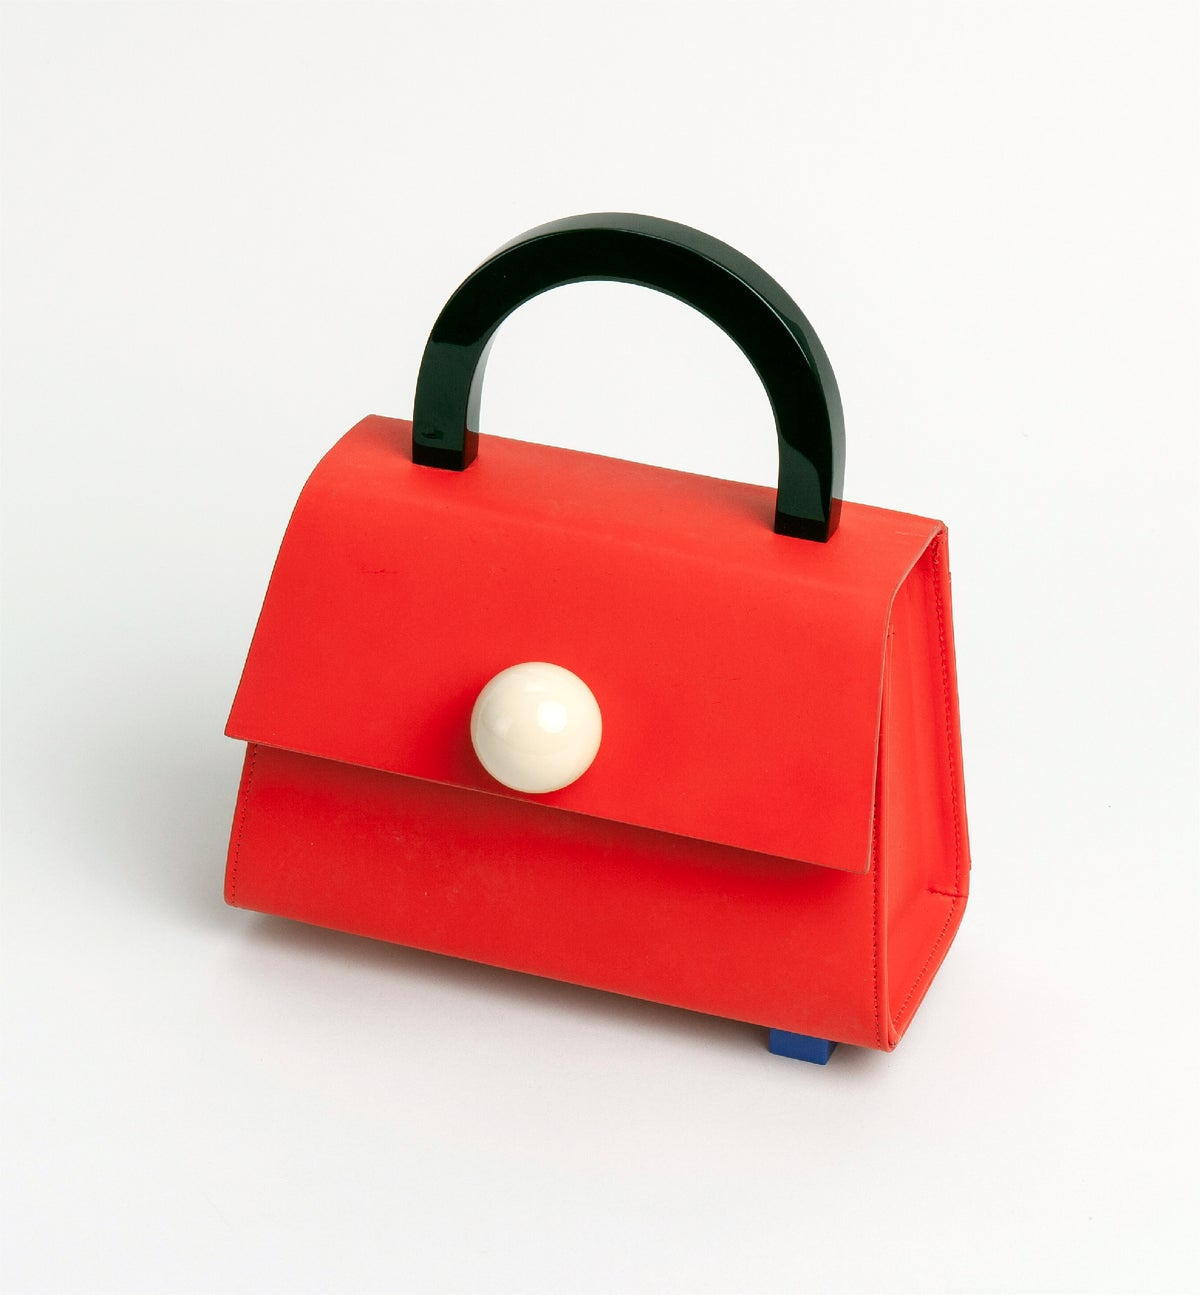 Image of Diva satchel bag • Bright Red with strap - Limited quantities